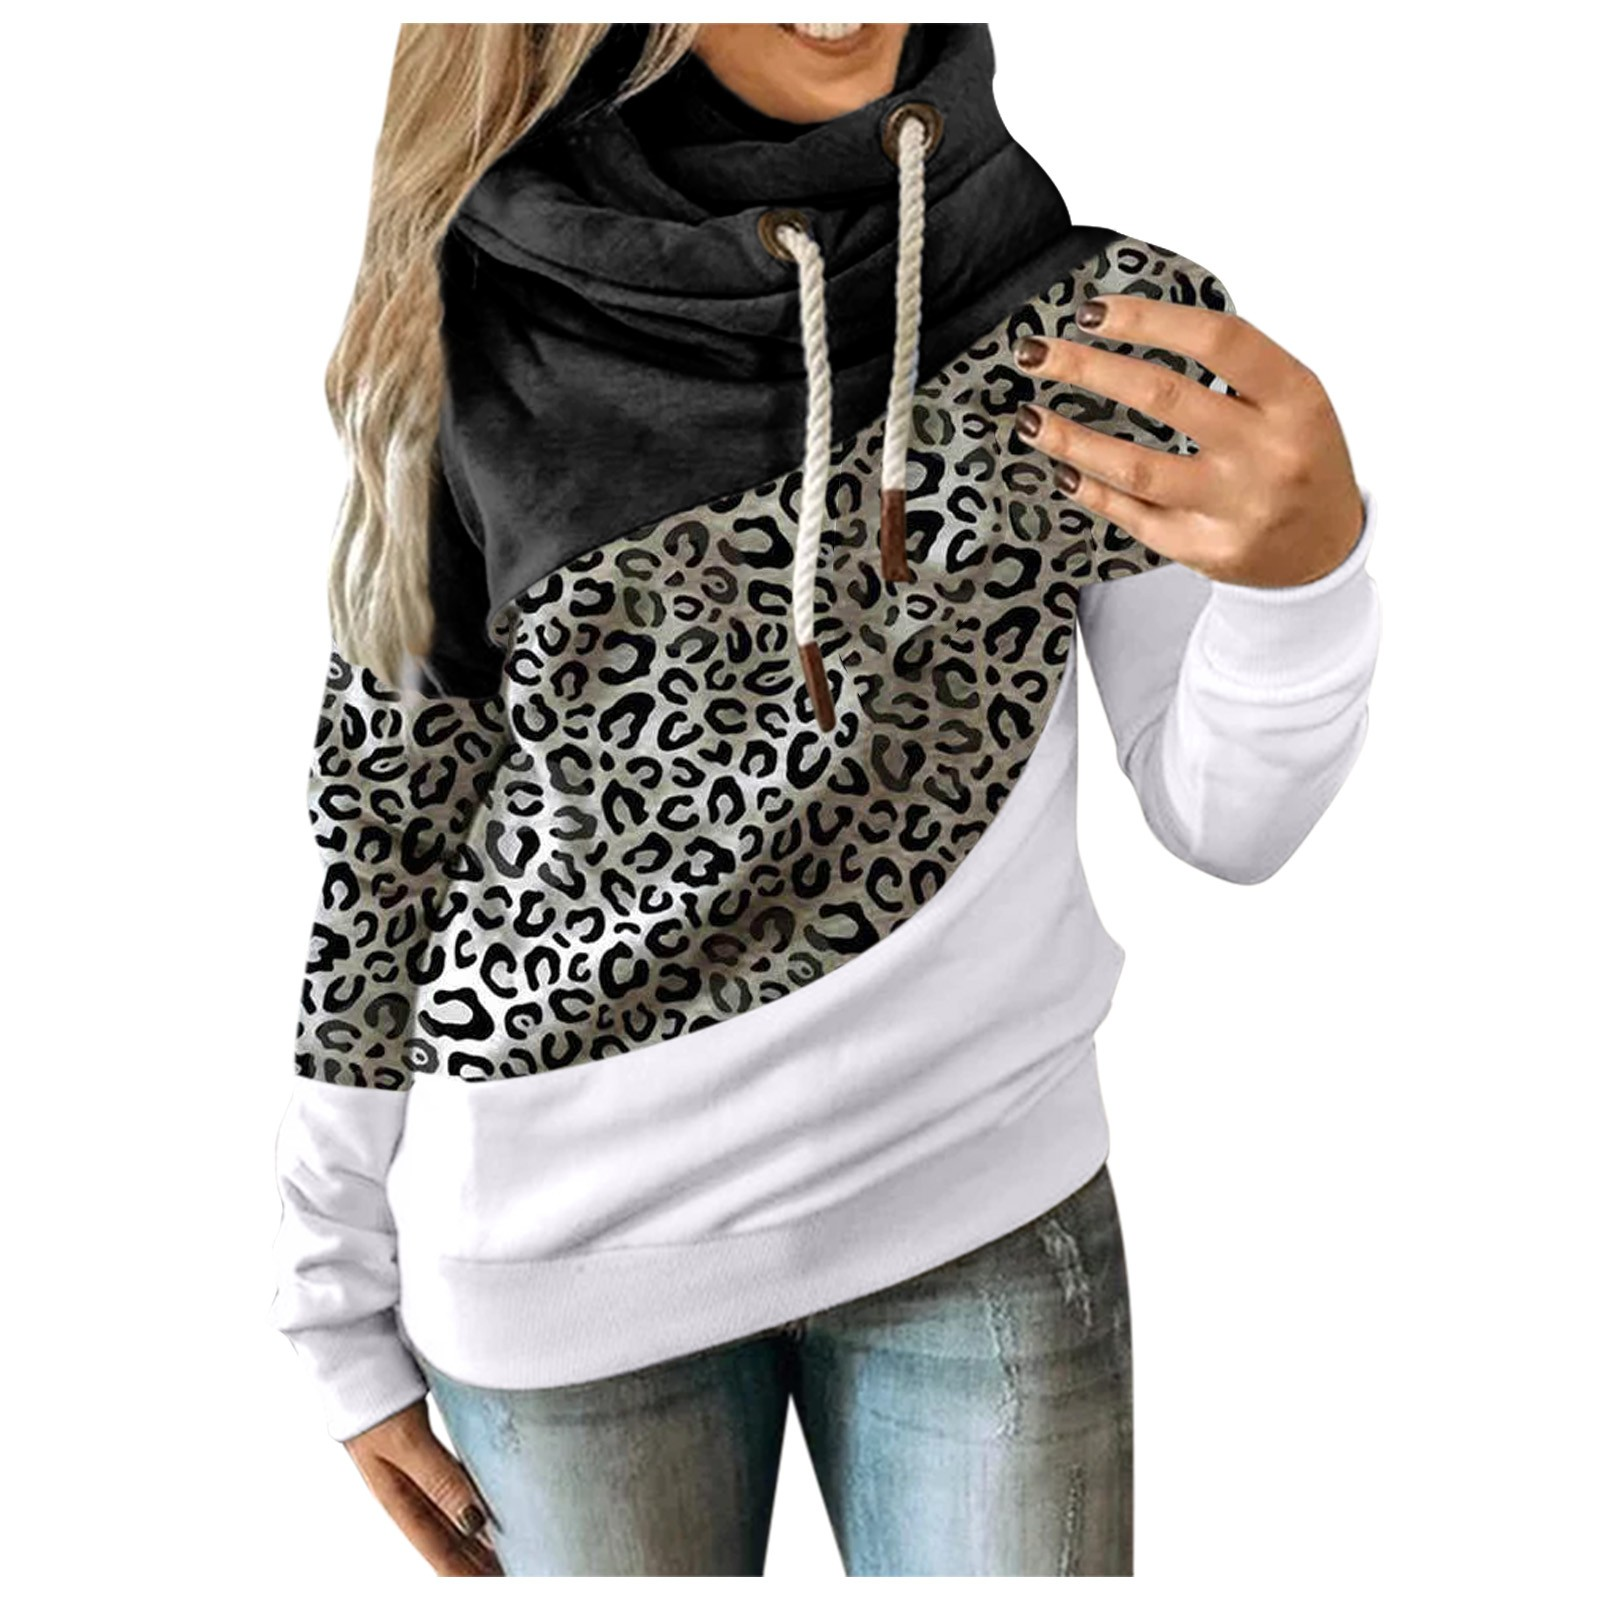 Hot Sale Women Casual Solid Contrast Long Sleeve Hoodie Sweatshirt Patchwork Printed Tops Sudaderas Mujer 2020 F Fast Ship 12